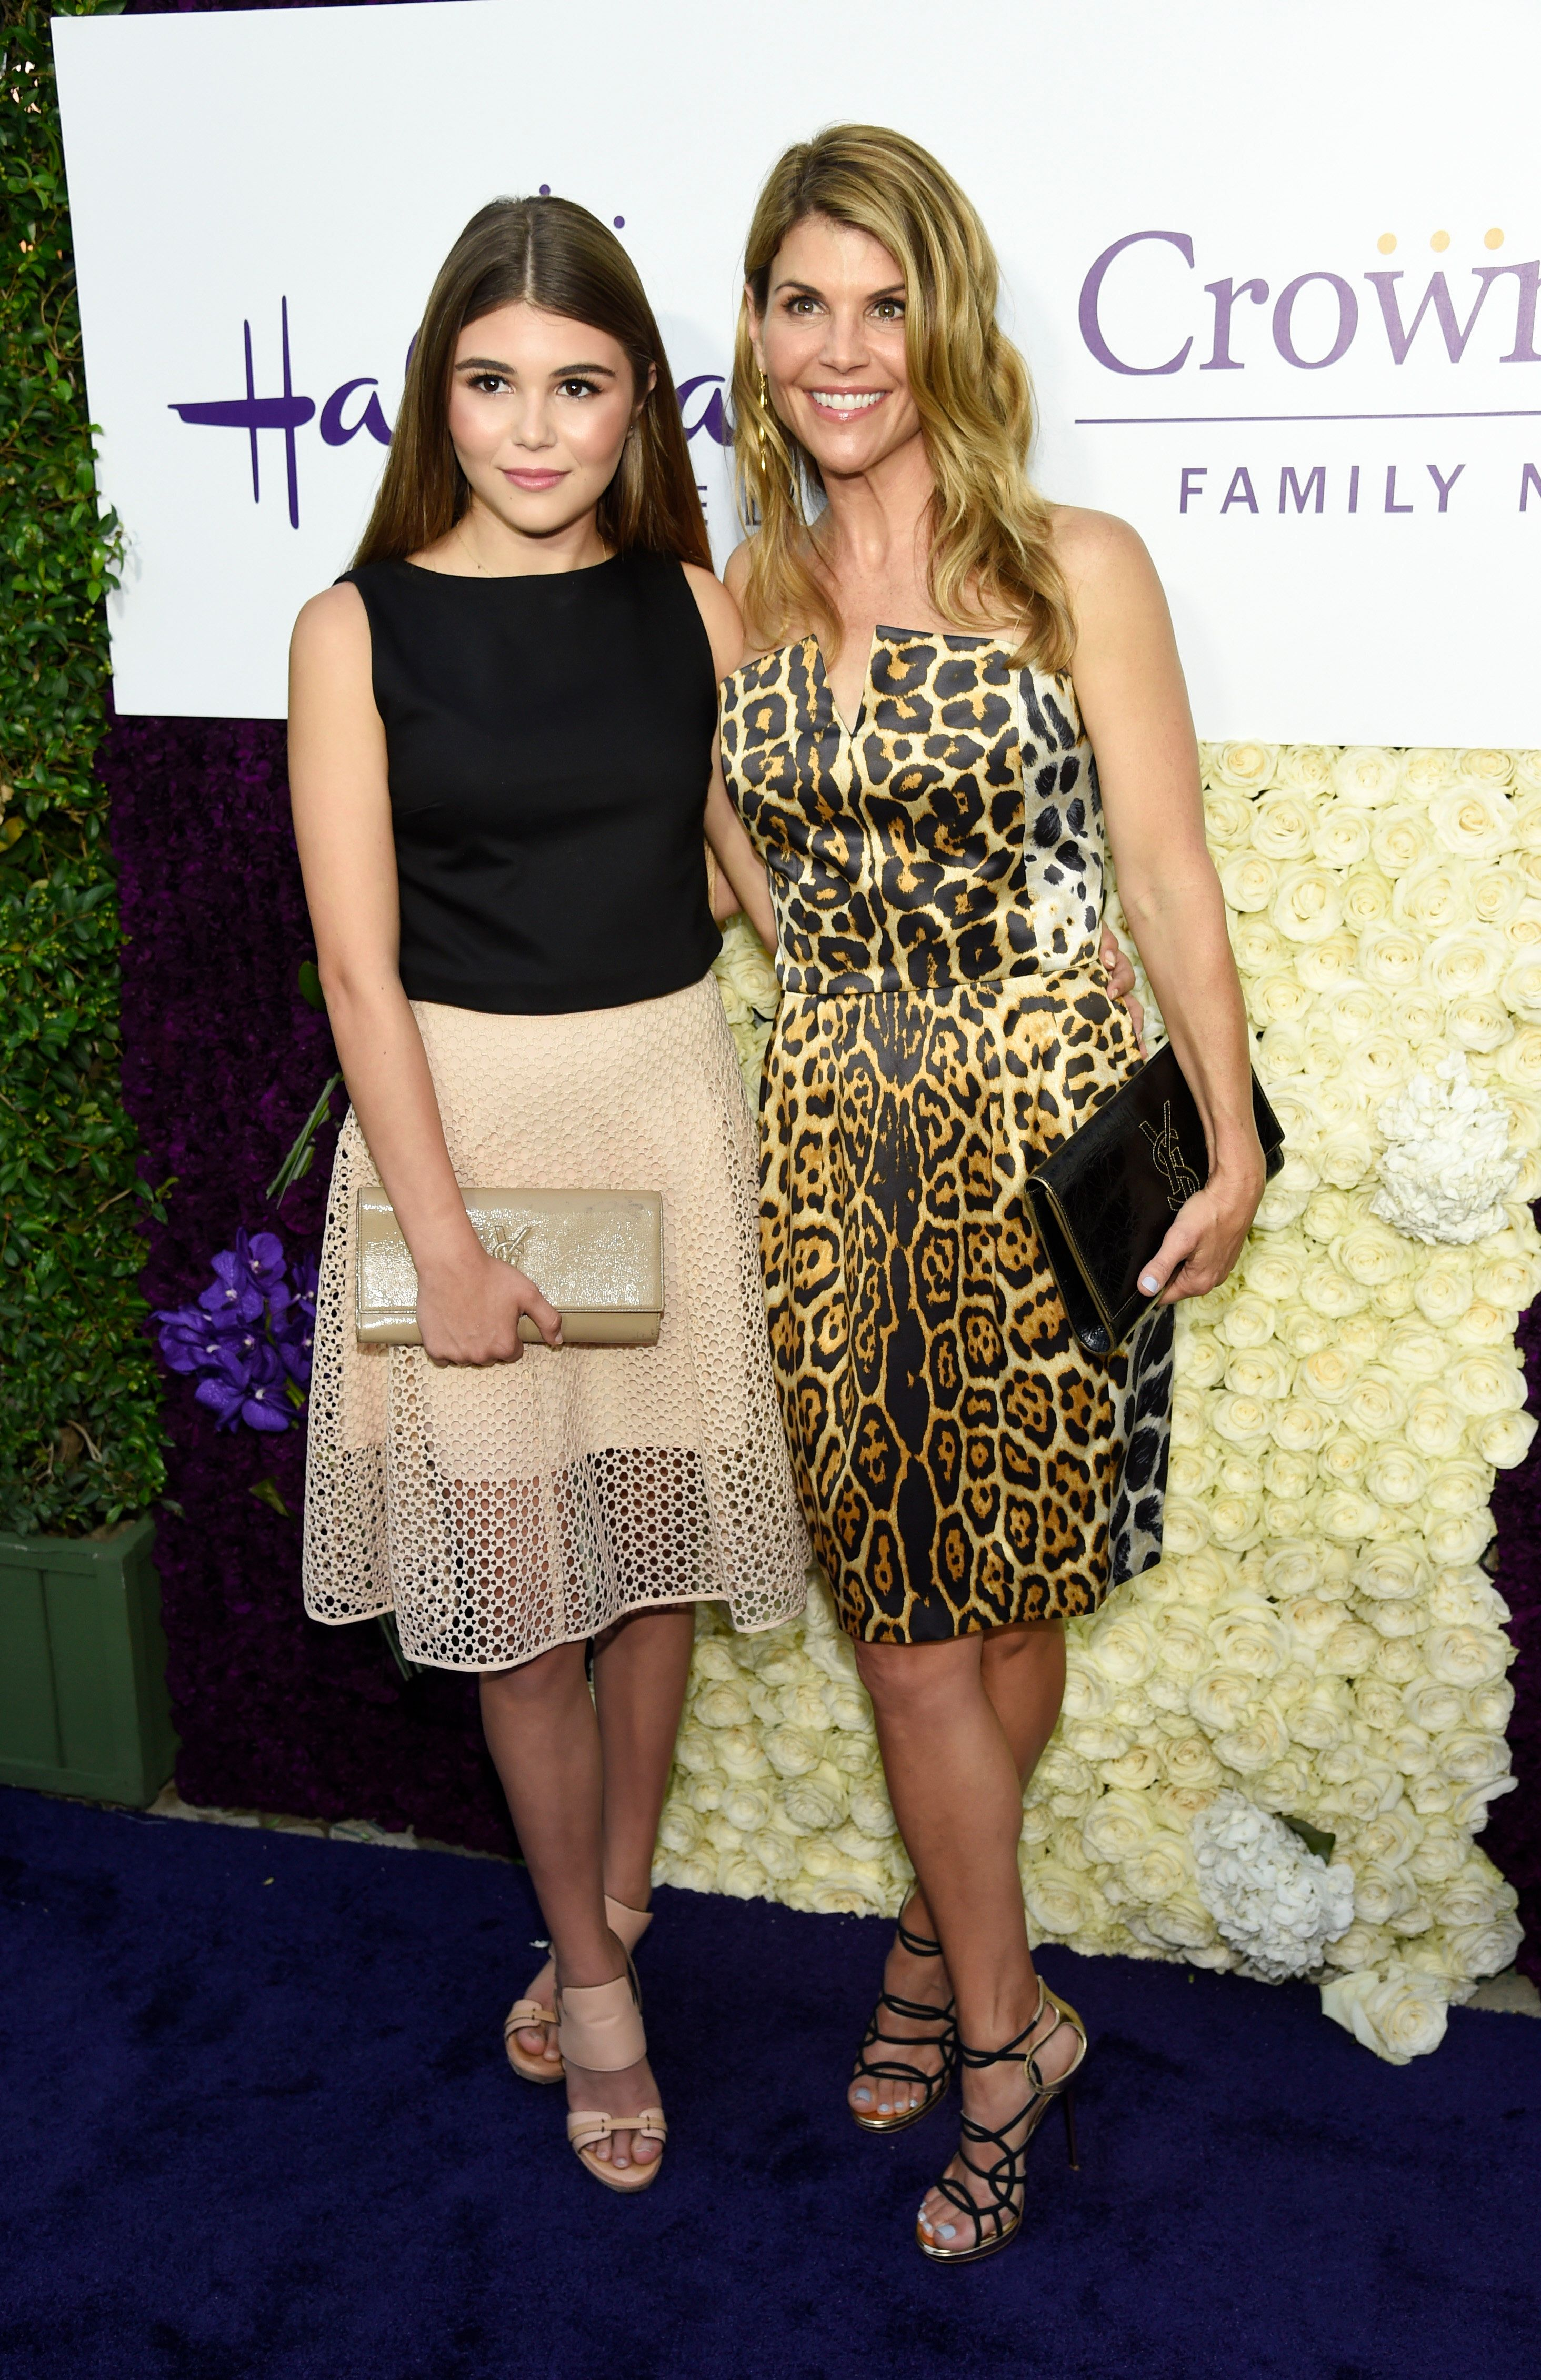 Actress Lori Laughlin poses with her daughter Olivia Jade at the Crown Media Family Networks Television Critics Association party on Wednesday, July 29, 2015, in Beverly Hills, Calif. (Photo by Chris Pizzello/Invision/AP)